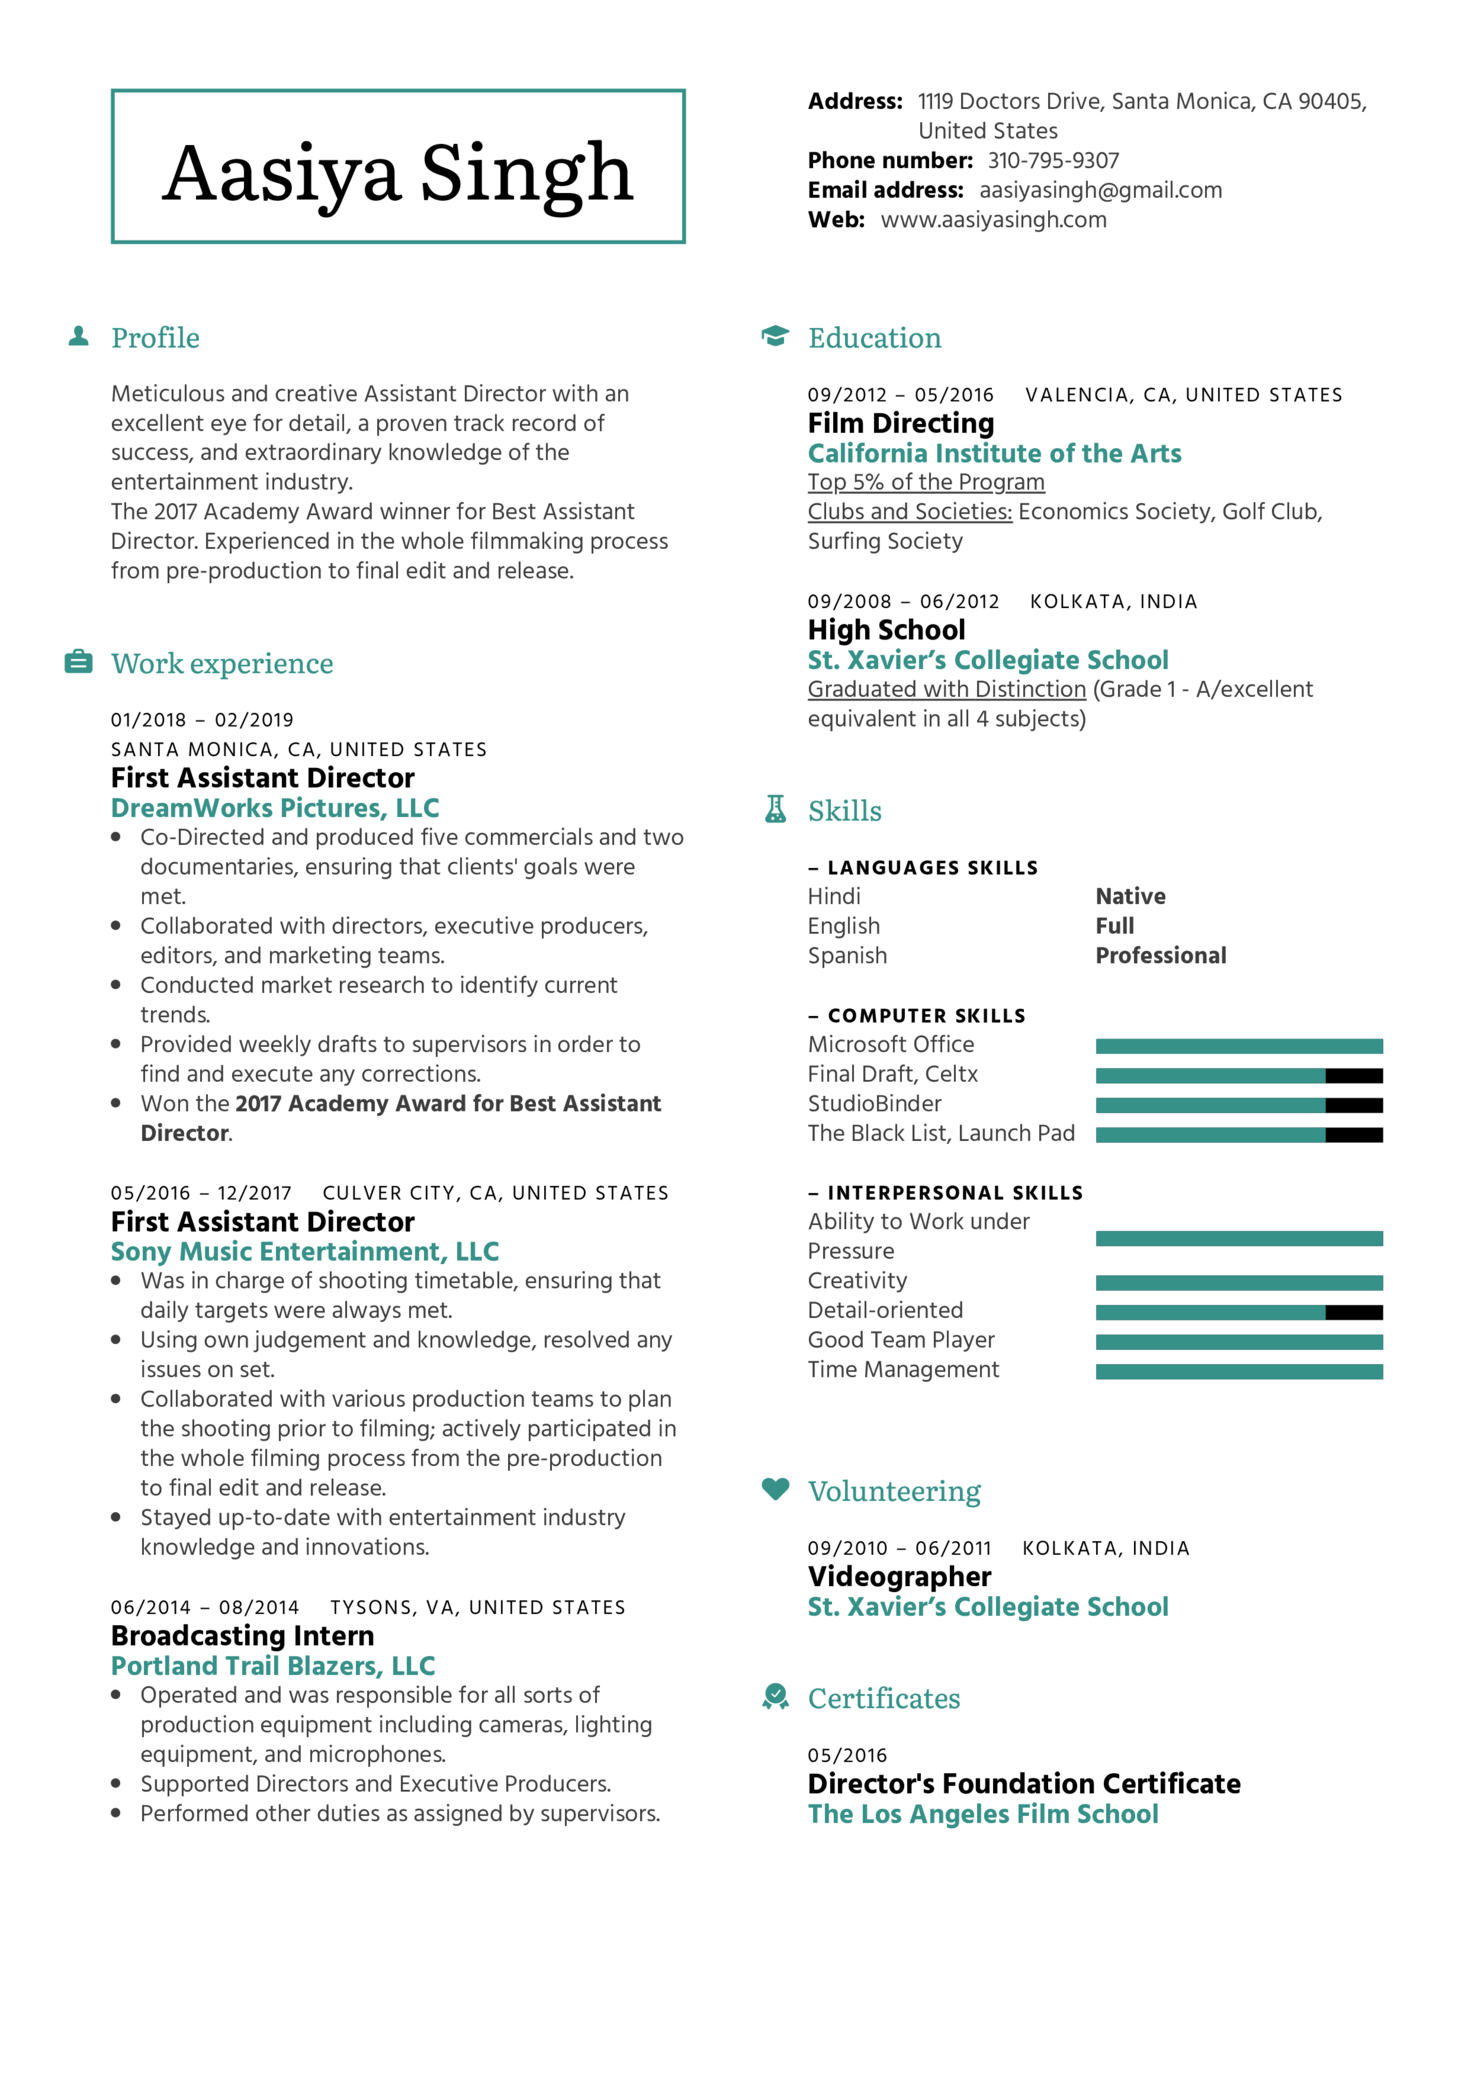 First Assistant Director Resume Example (Part 1)